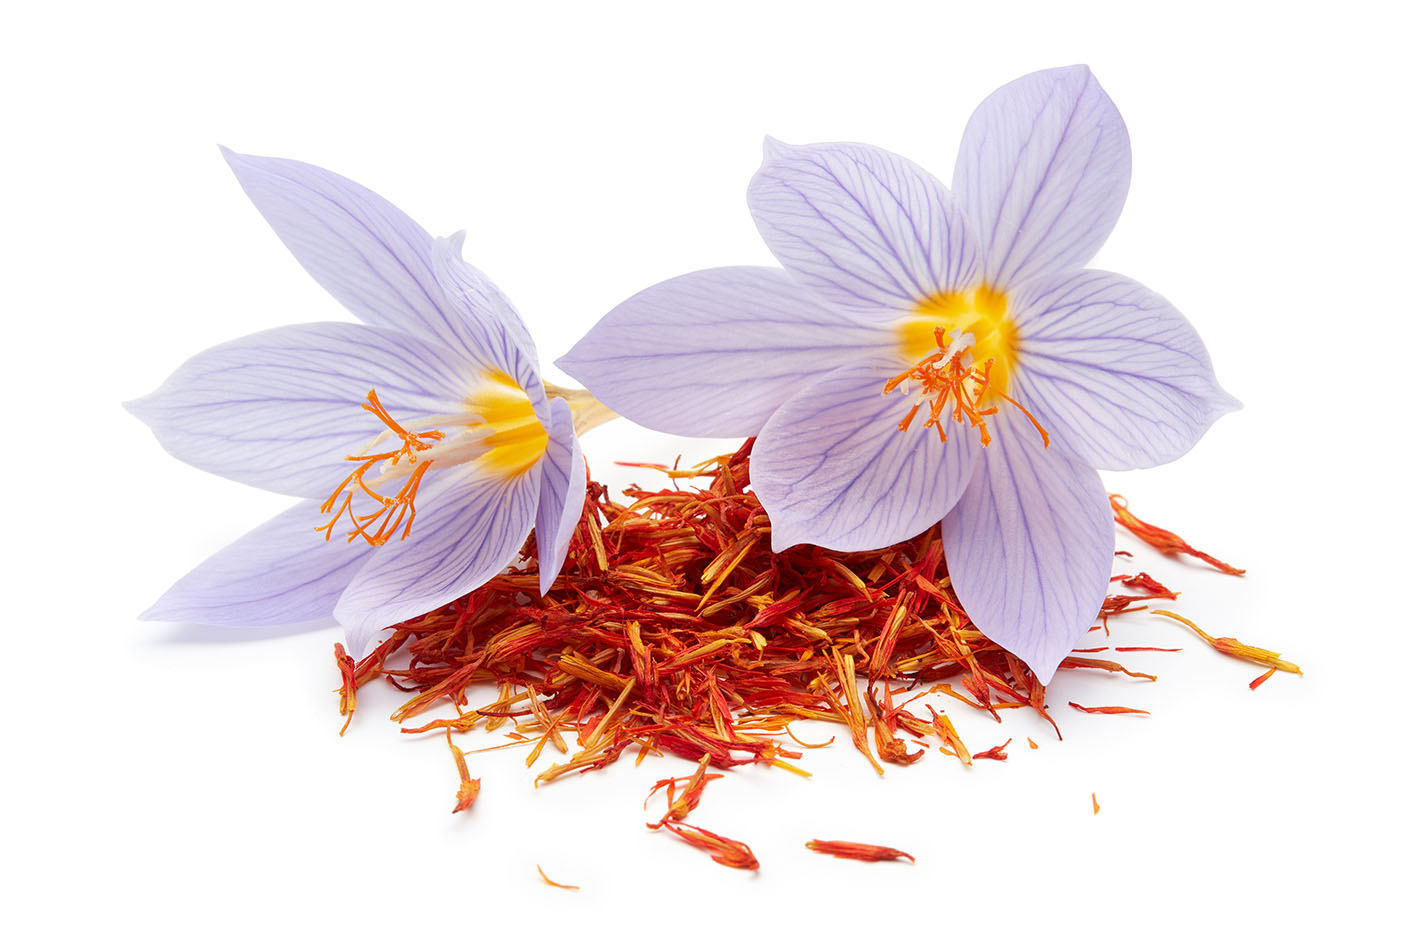 Iran has historically dominated the trade in 'red gold' (Saffron)